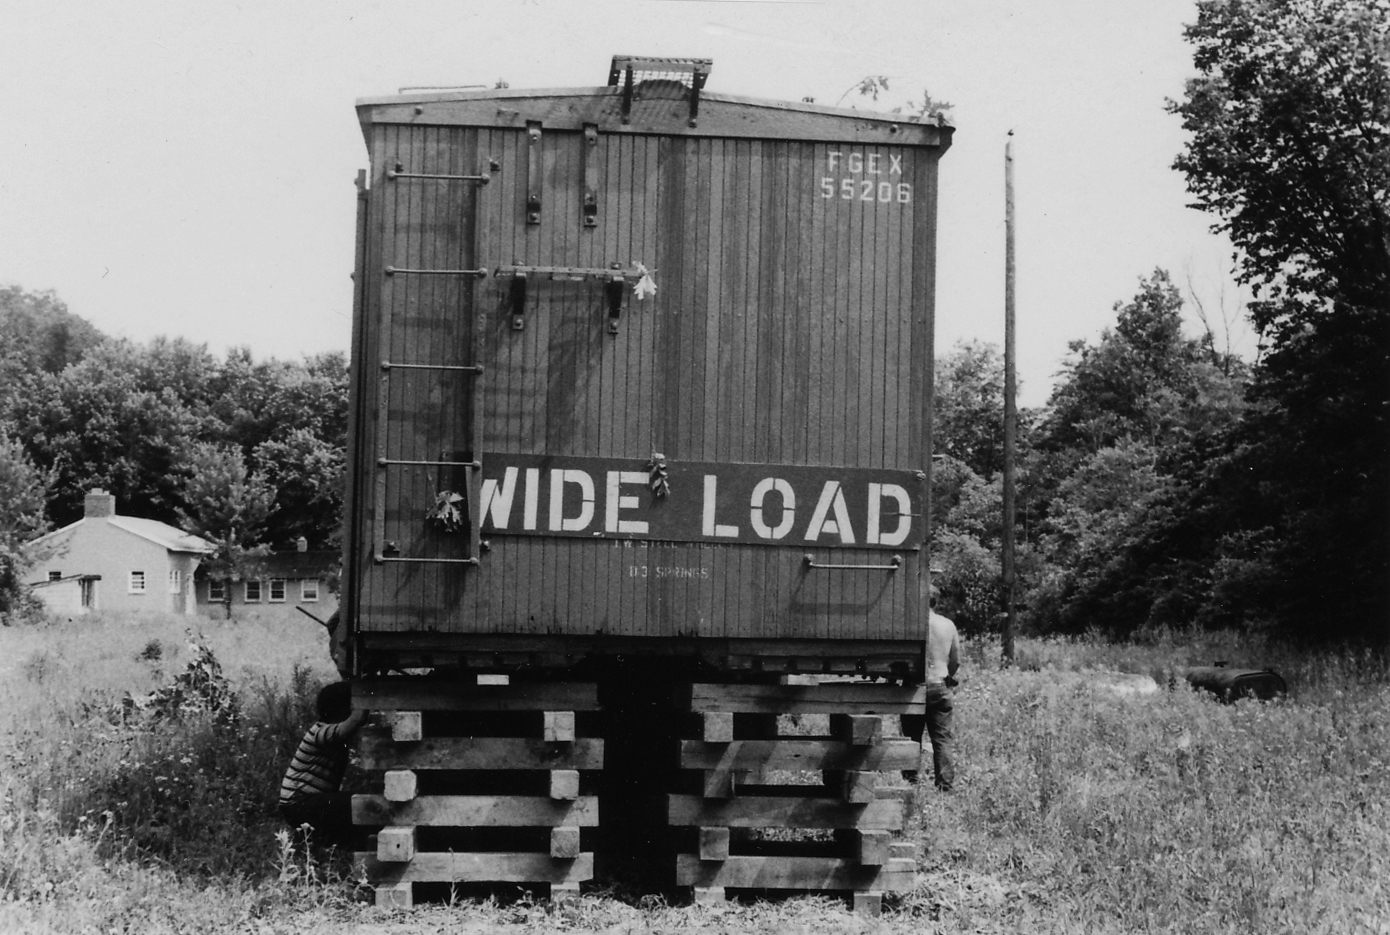 Jim and his family moved to the Shenandoah Valley in 1970 and set up housekeeping in a group of 1920s era boxcars along with two other families.